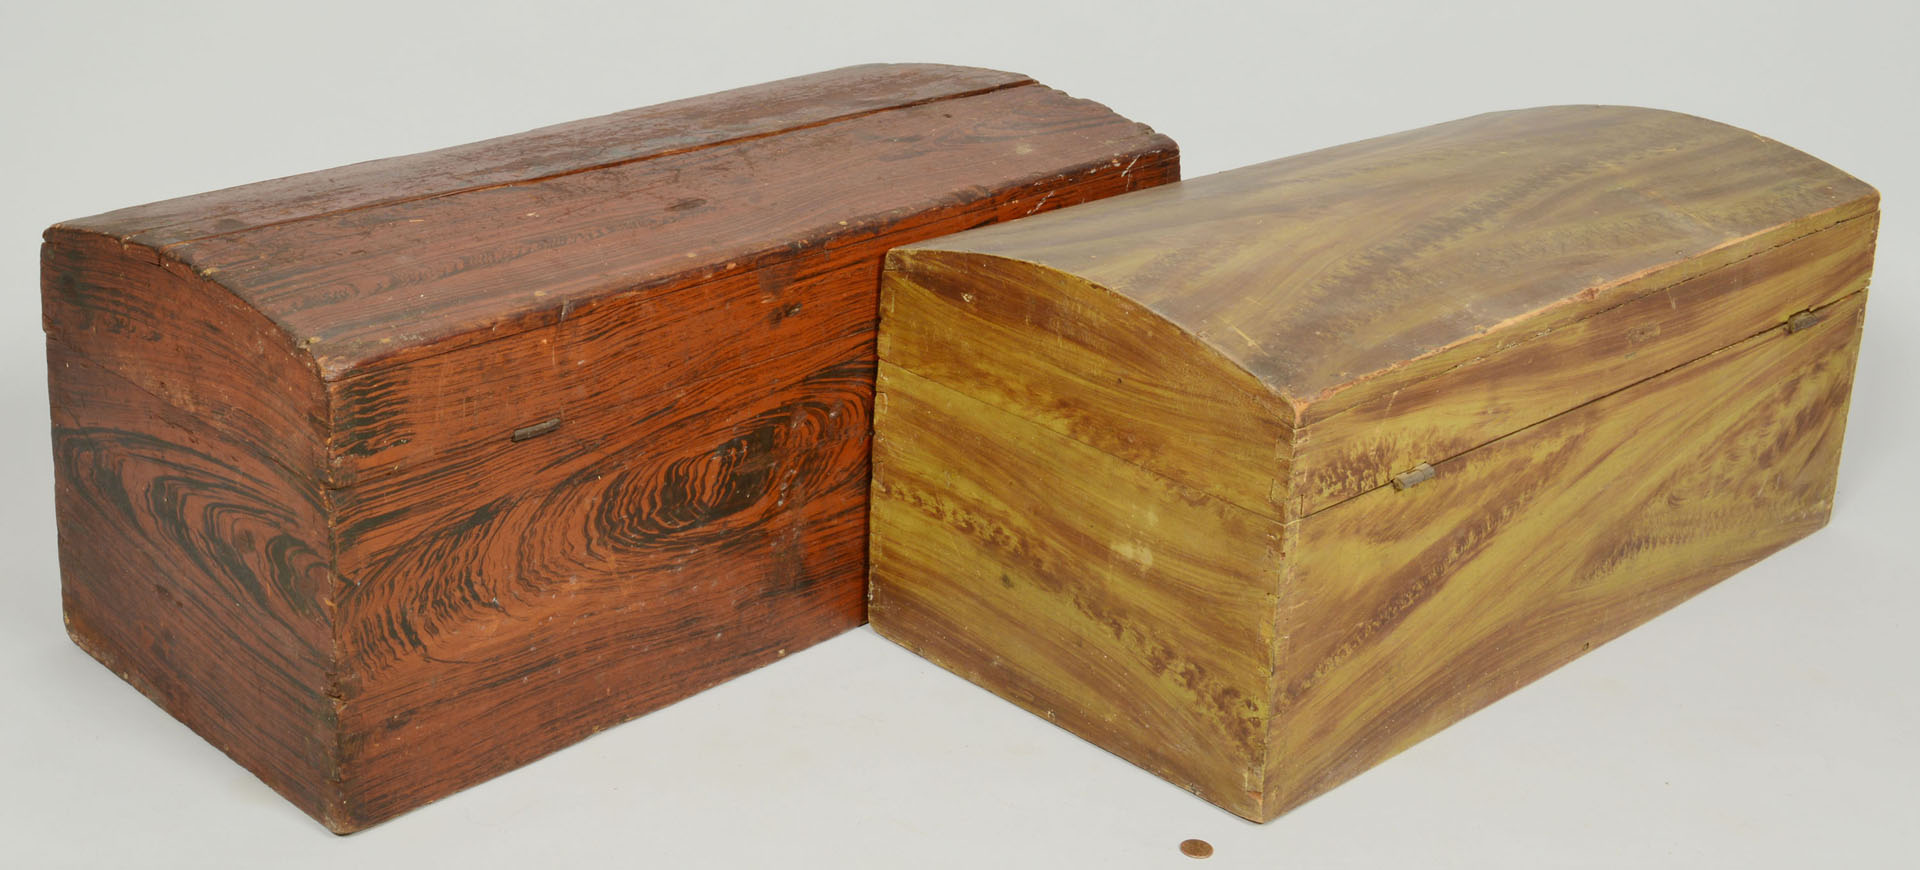 2 Small Grain Painted Dome Top Chests, 19th cent.